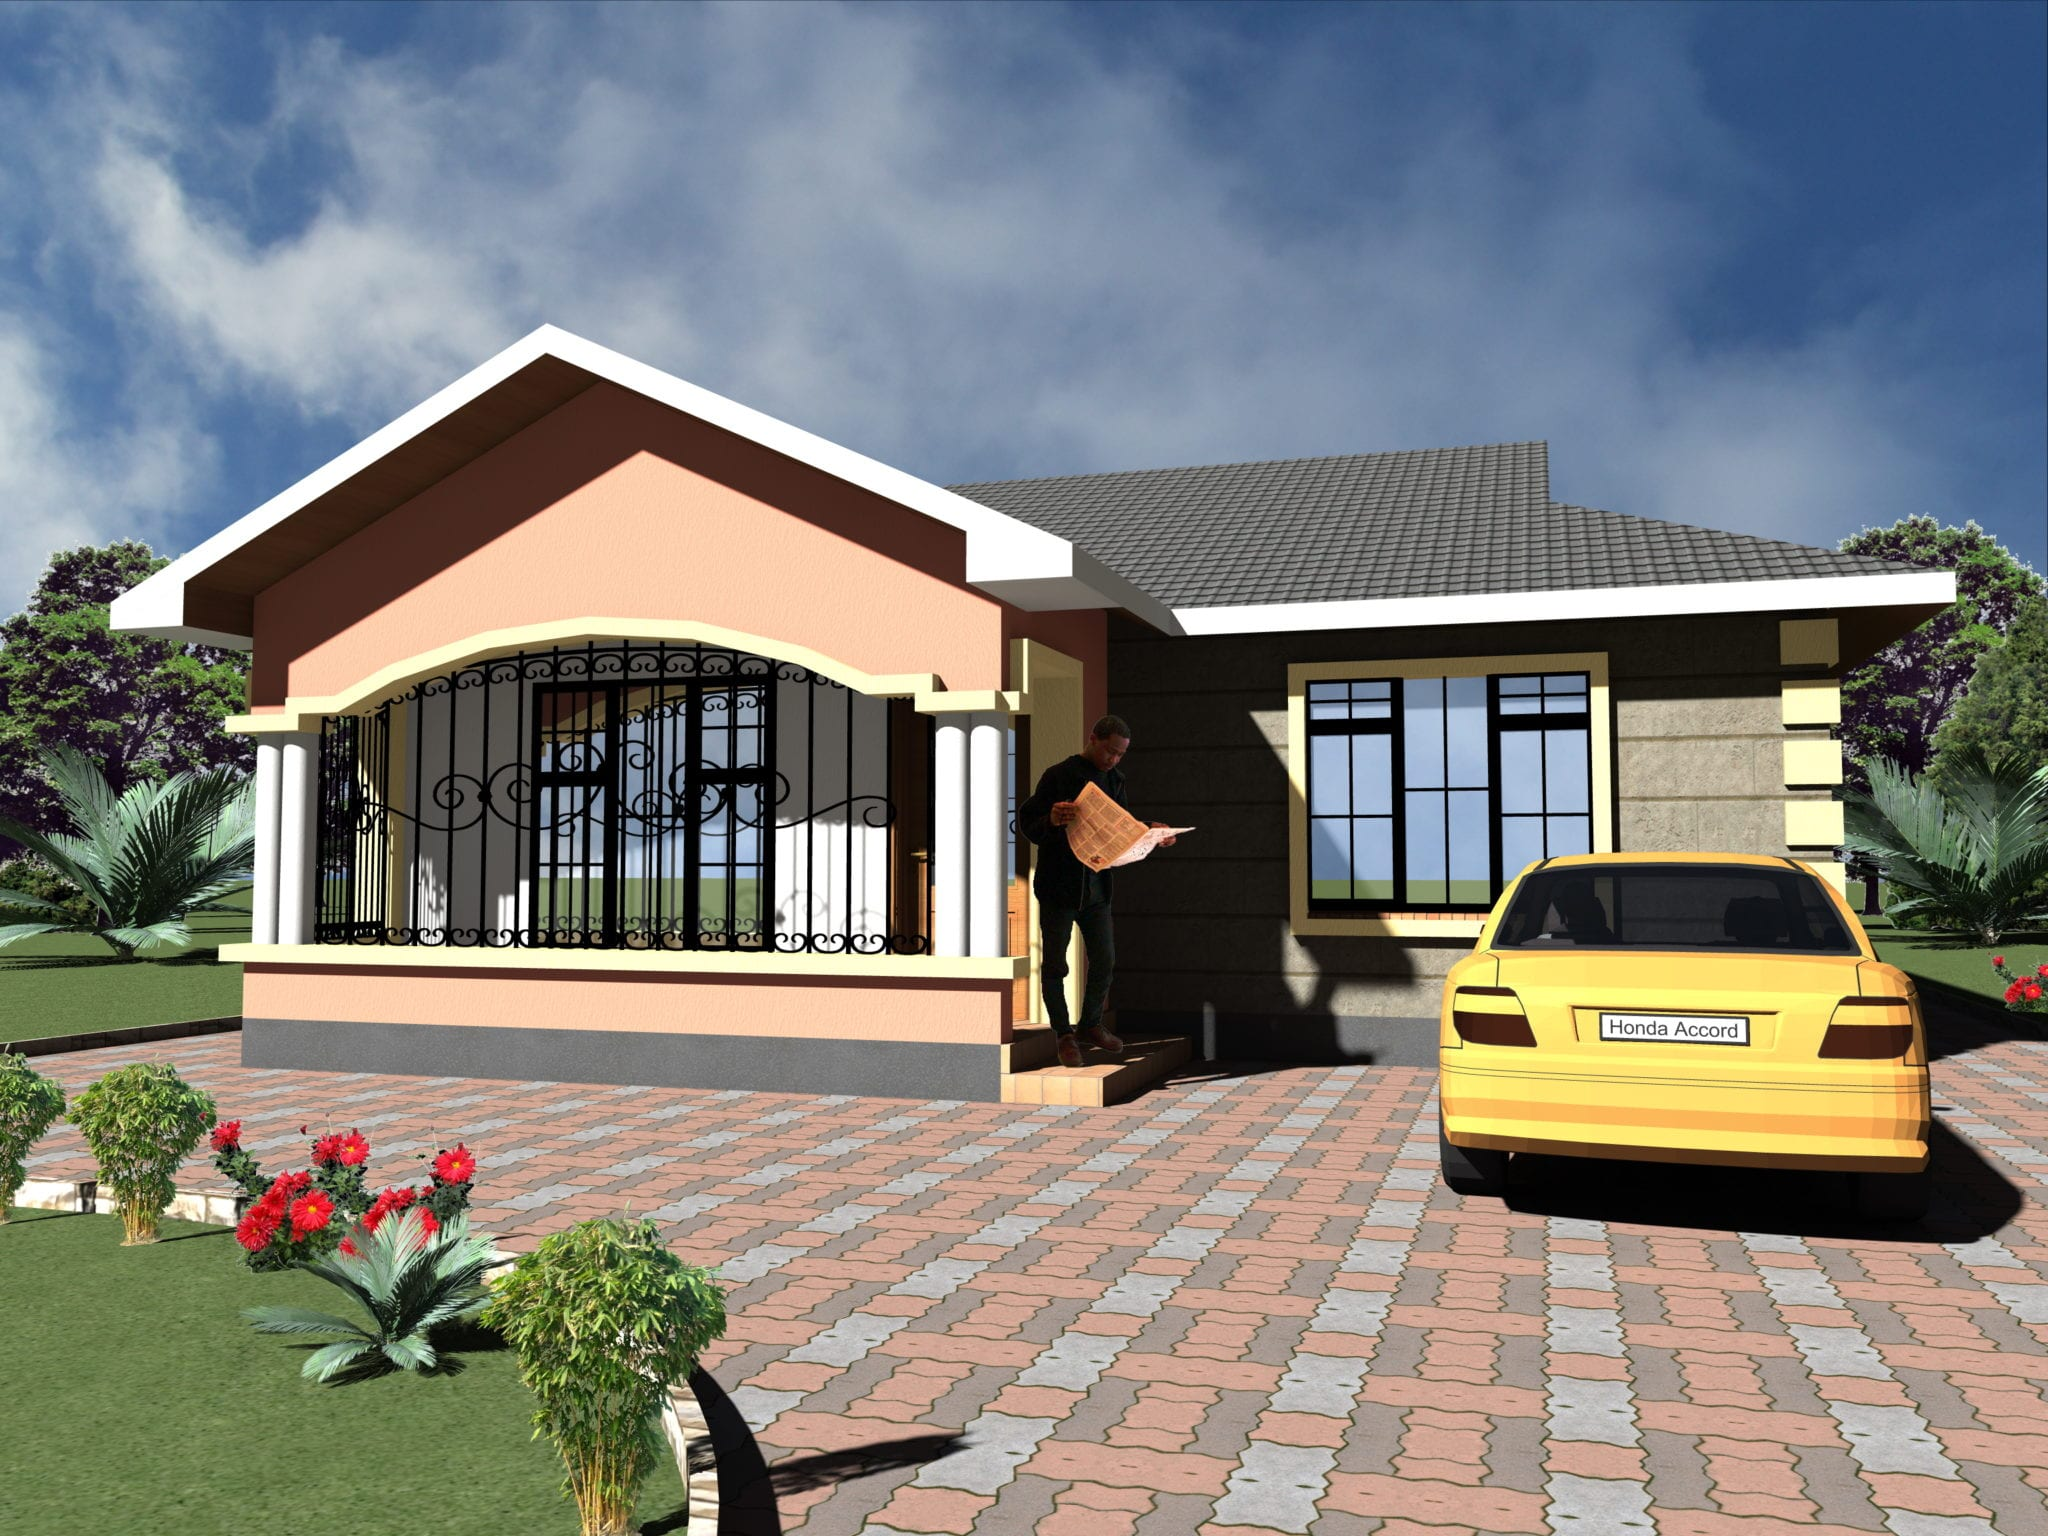 House designs in kenya and cost |HPD Consult on flat room home designs, 1000 sq ft home designs, apartment designs, barn designs, small closet designs, pool home designs, 7 bedroom home designs, utility room designs, pet friendly home designs, garage designs, ocean view home designs, bathroom home designs, living room home designs, 3 bedroom home designs, 6 bedroom home designs, loft home designs, 5 bedroom home designs, kitchen designs, patio home designs, 4 bedroom home designs,